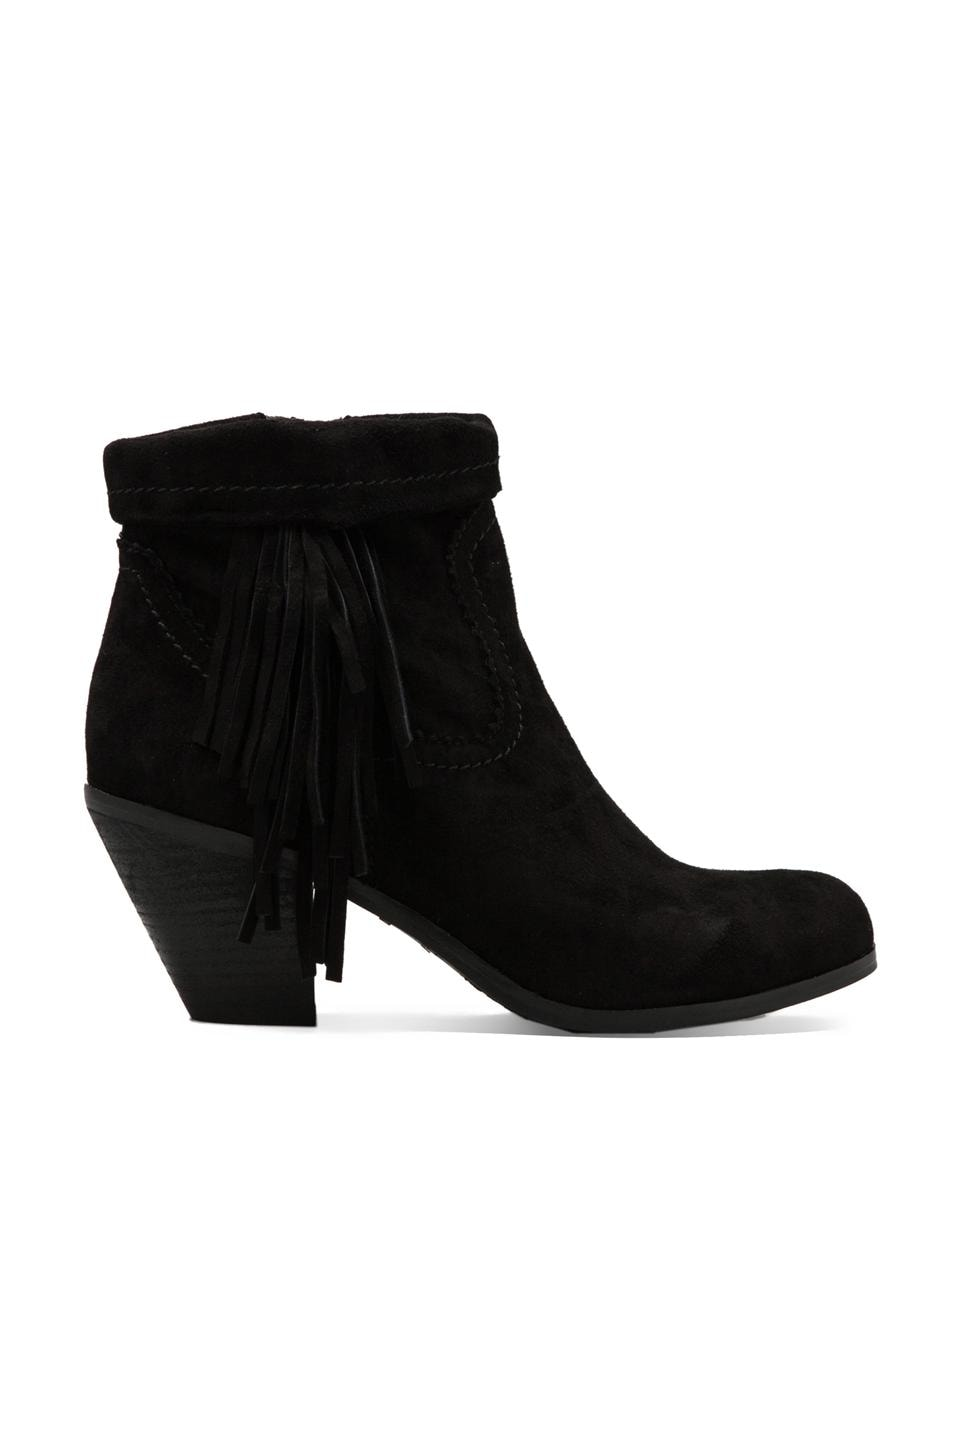 Sam Edelman Louie Boot in Black Suede